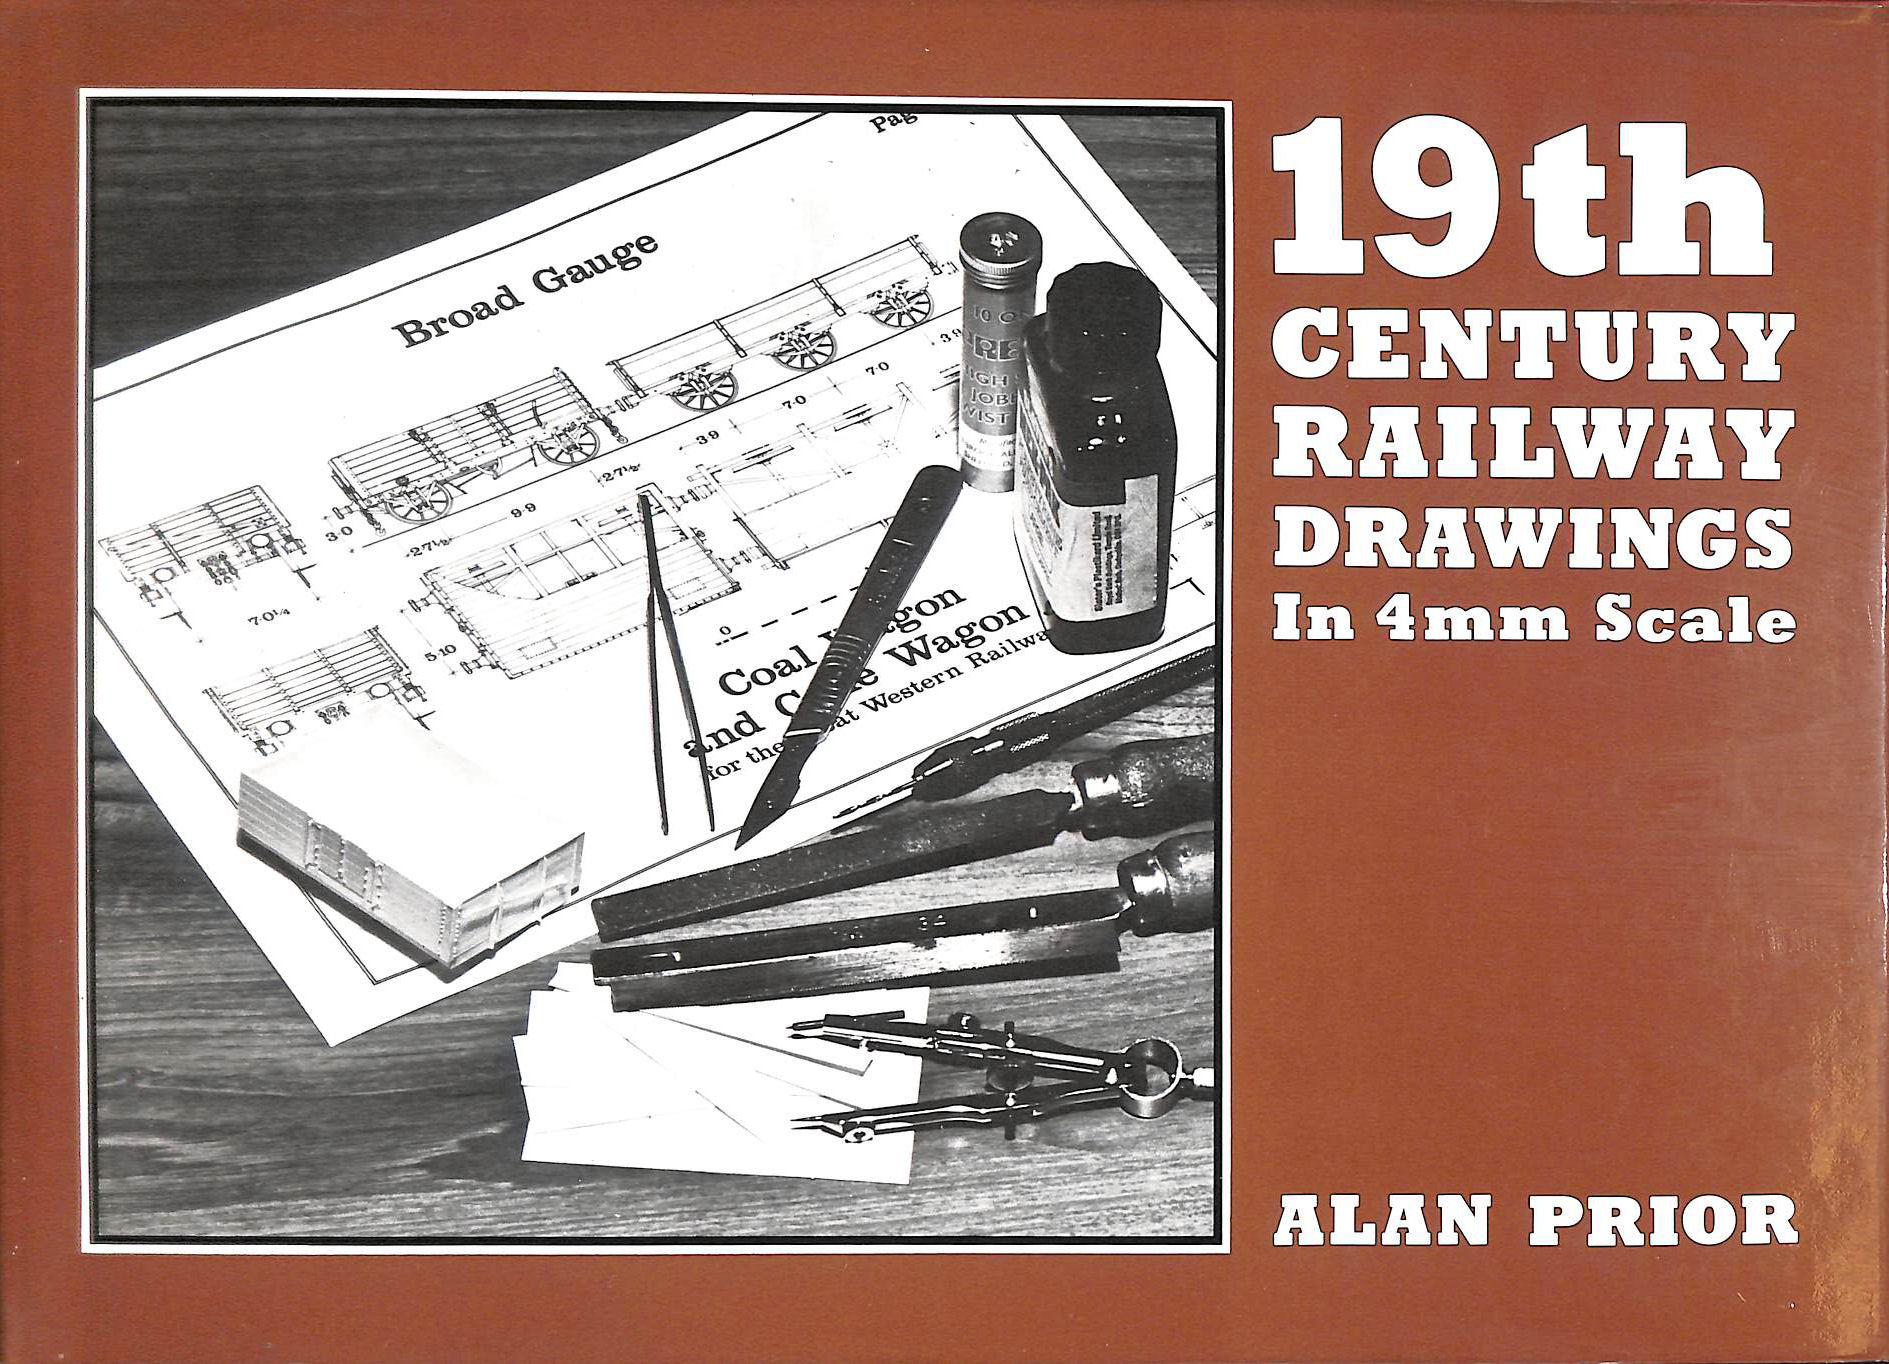 Image for 19th century Railway Drawings in 4mm Scale